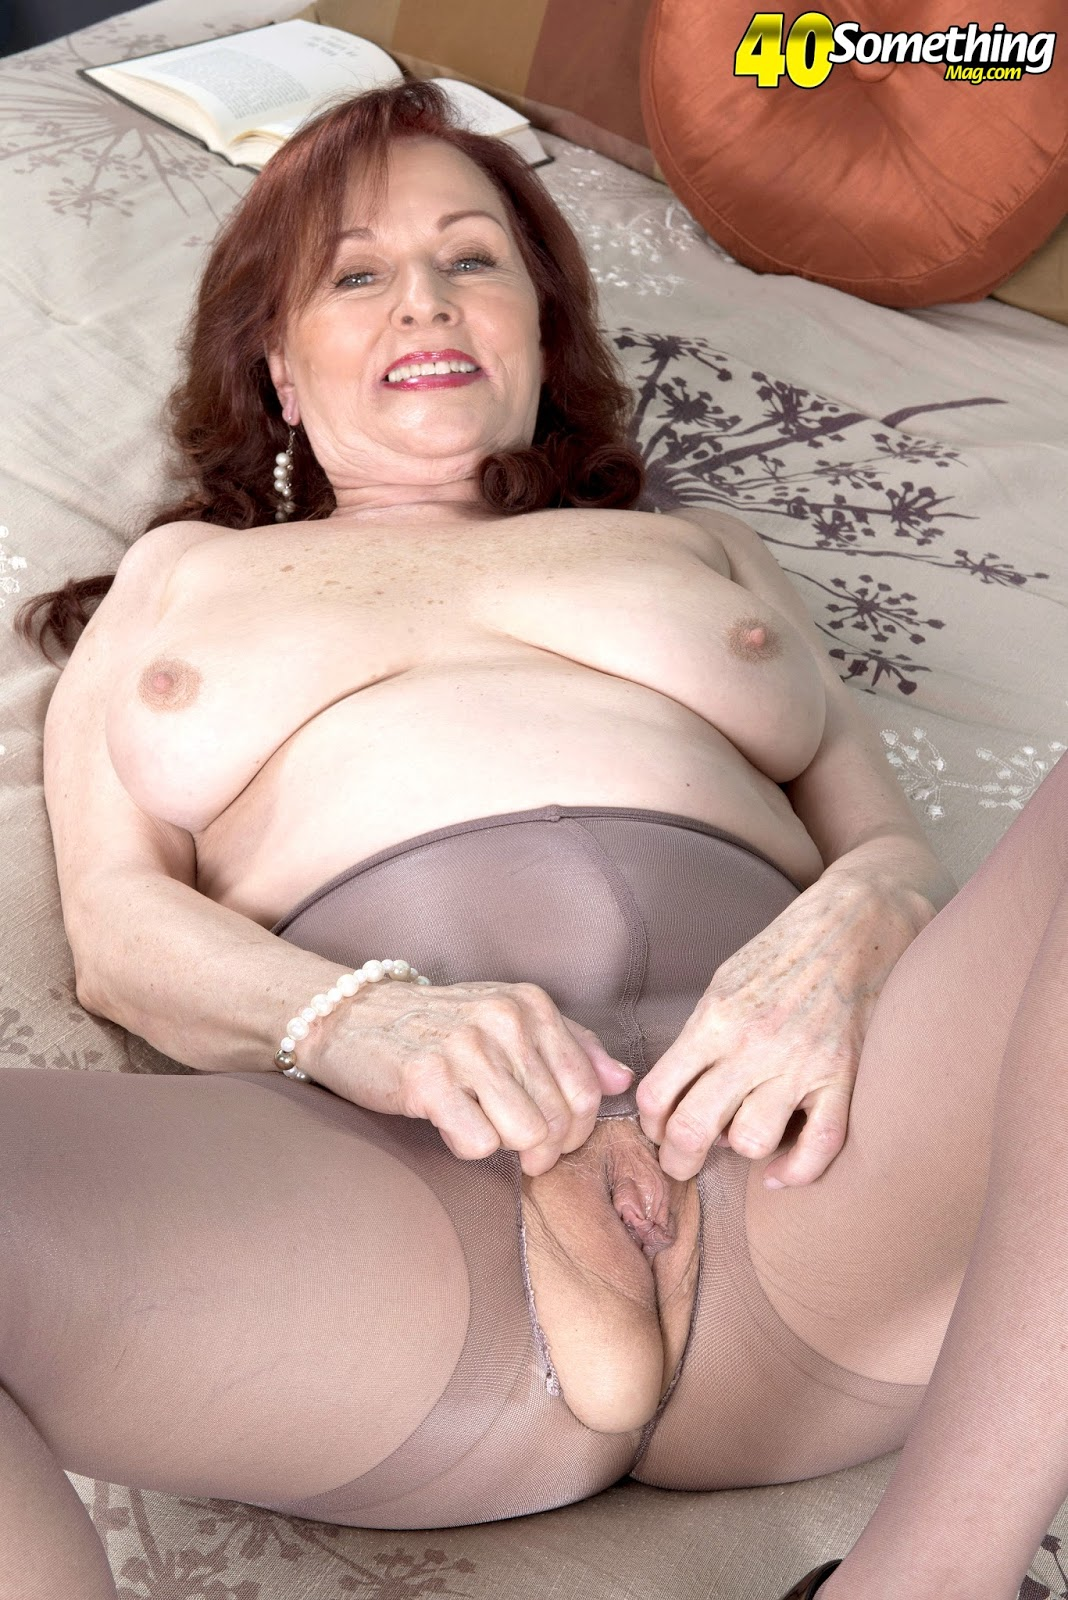 Archive Of Old Women Milf Mature Granny 22 Hot Solo Photo -3646